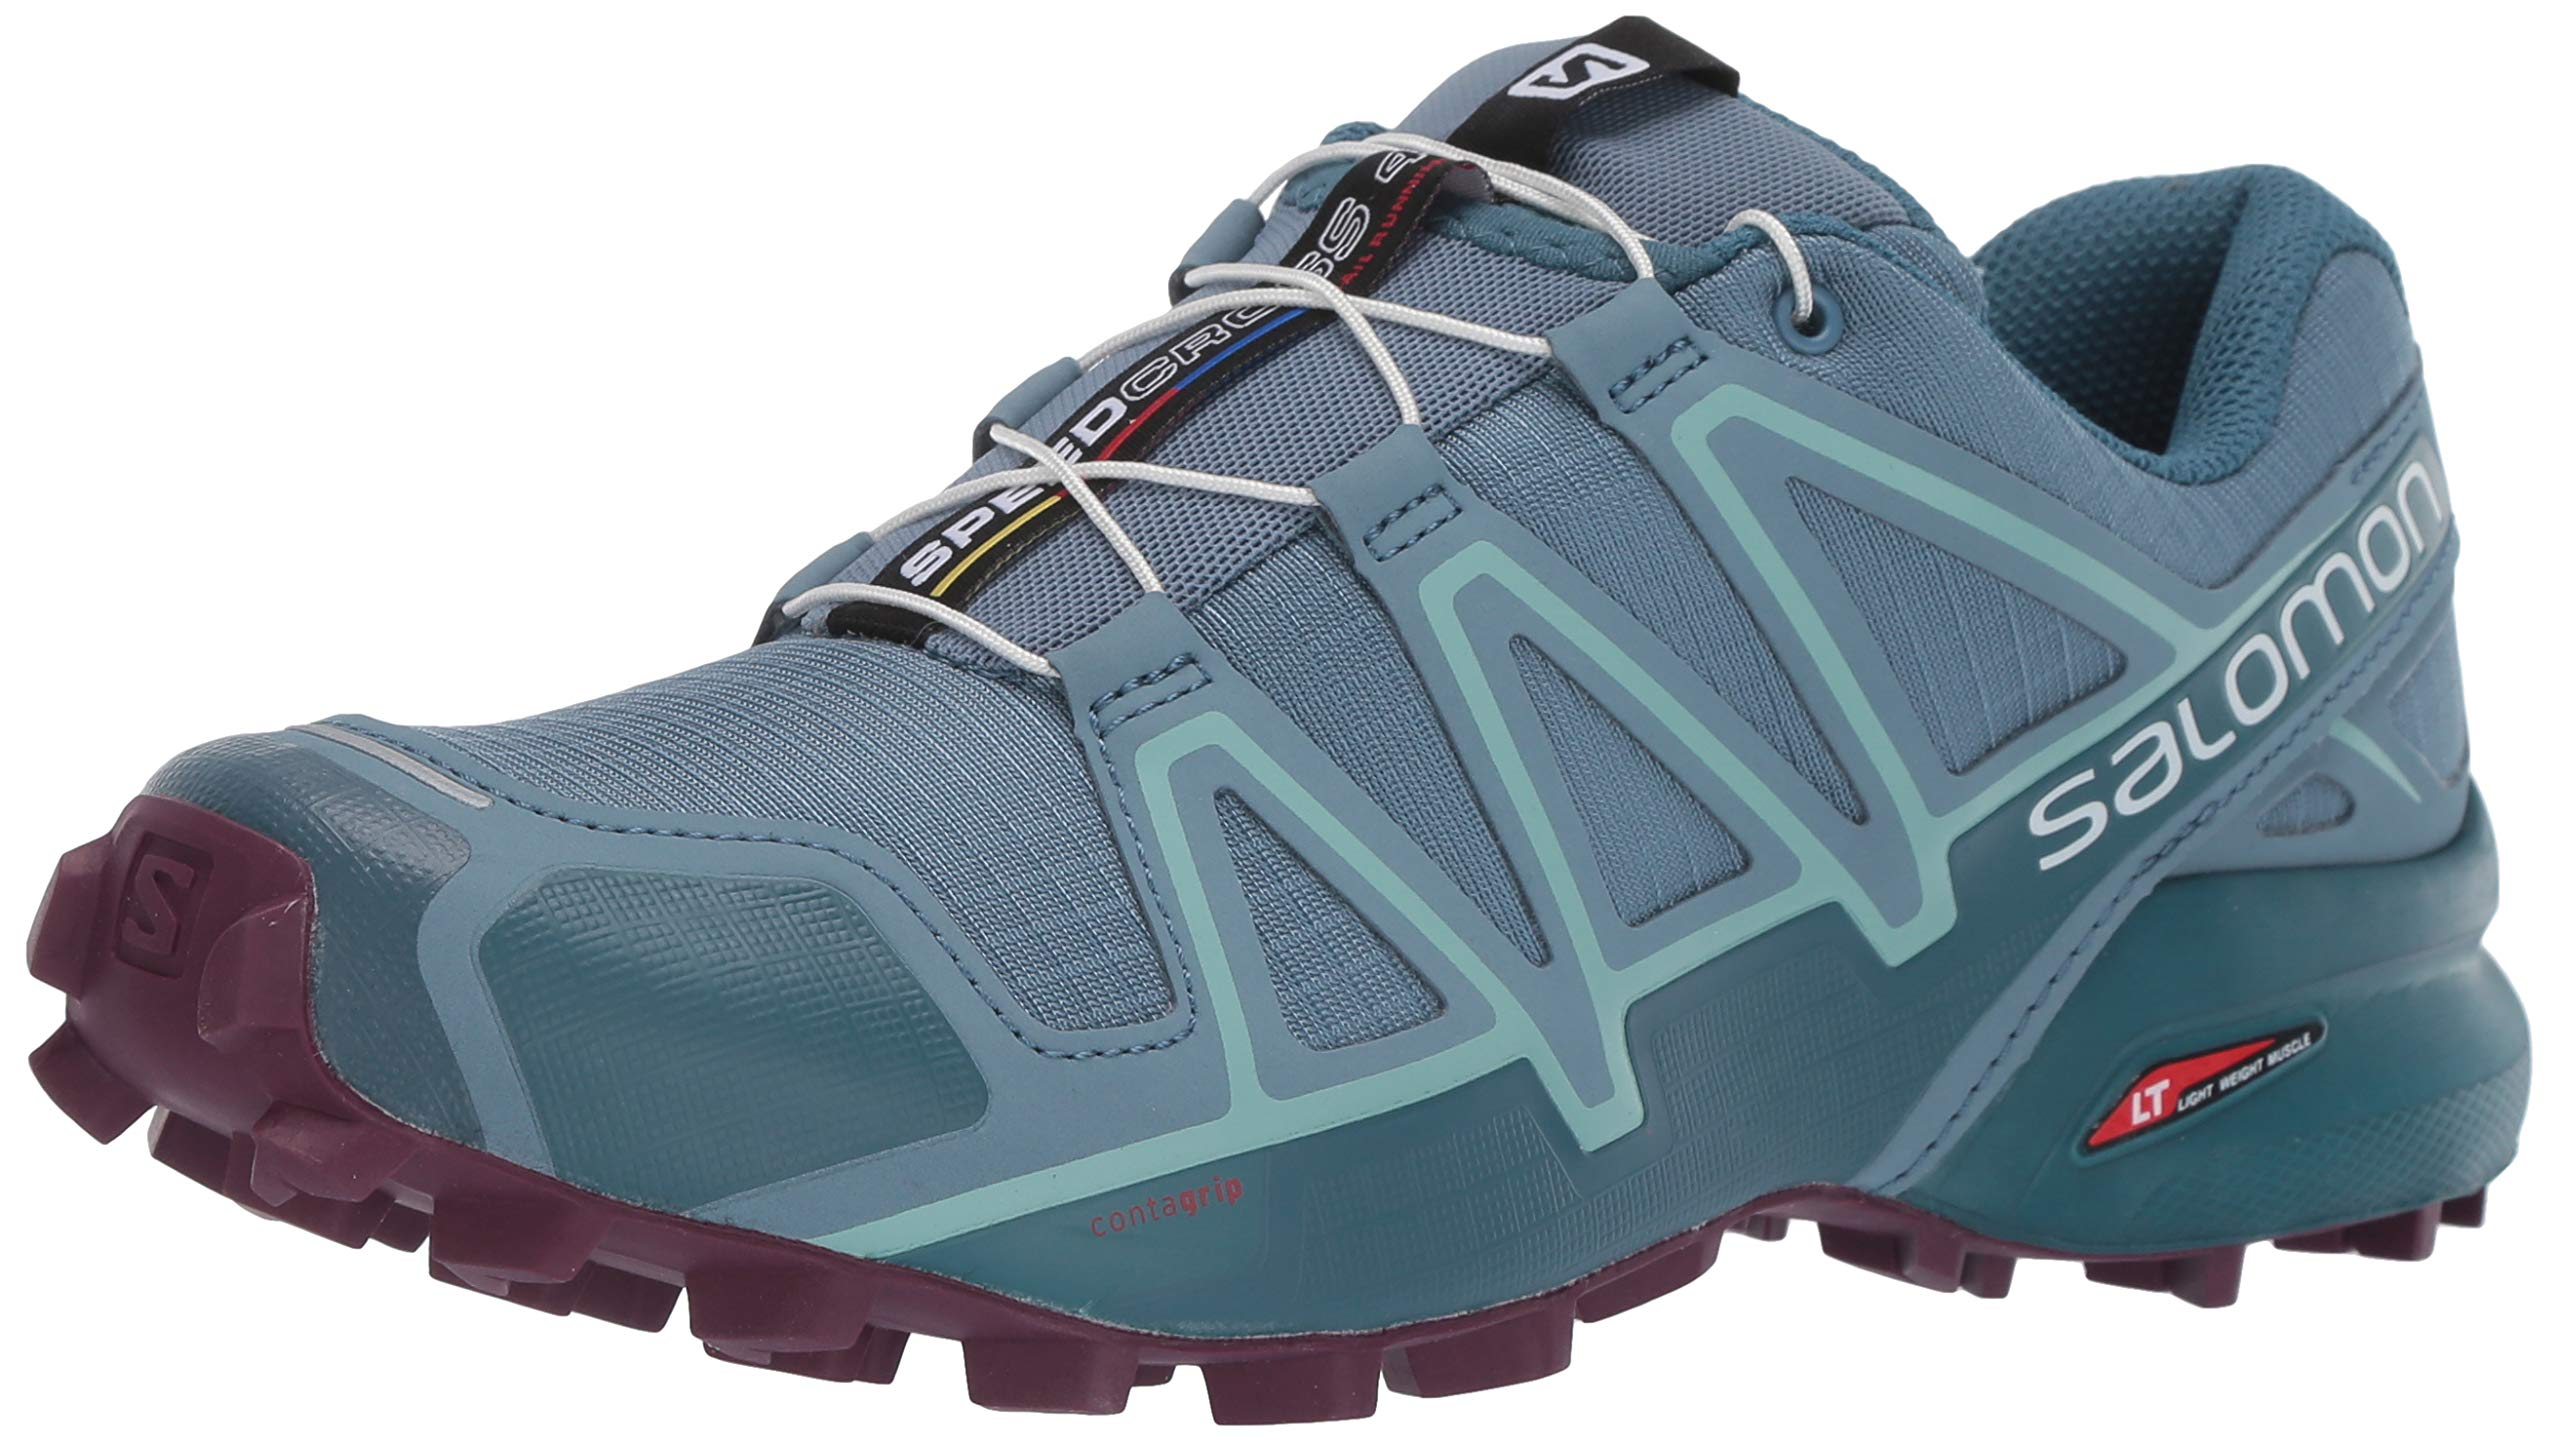 Salomon Women's Speedcross 4 W Trail Running Shoe Bluestone/Mallard Blue/Dark Purple 5 Standard US Width US by Salomon (Image #1)